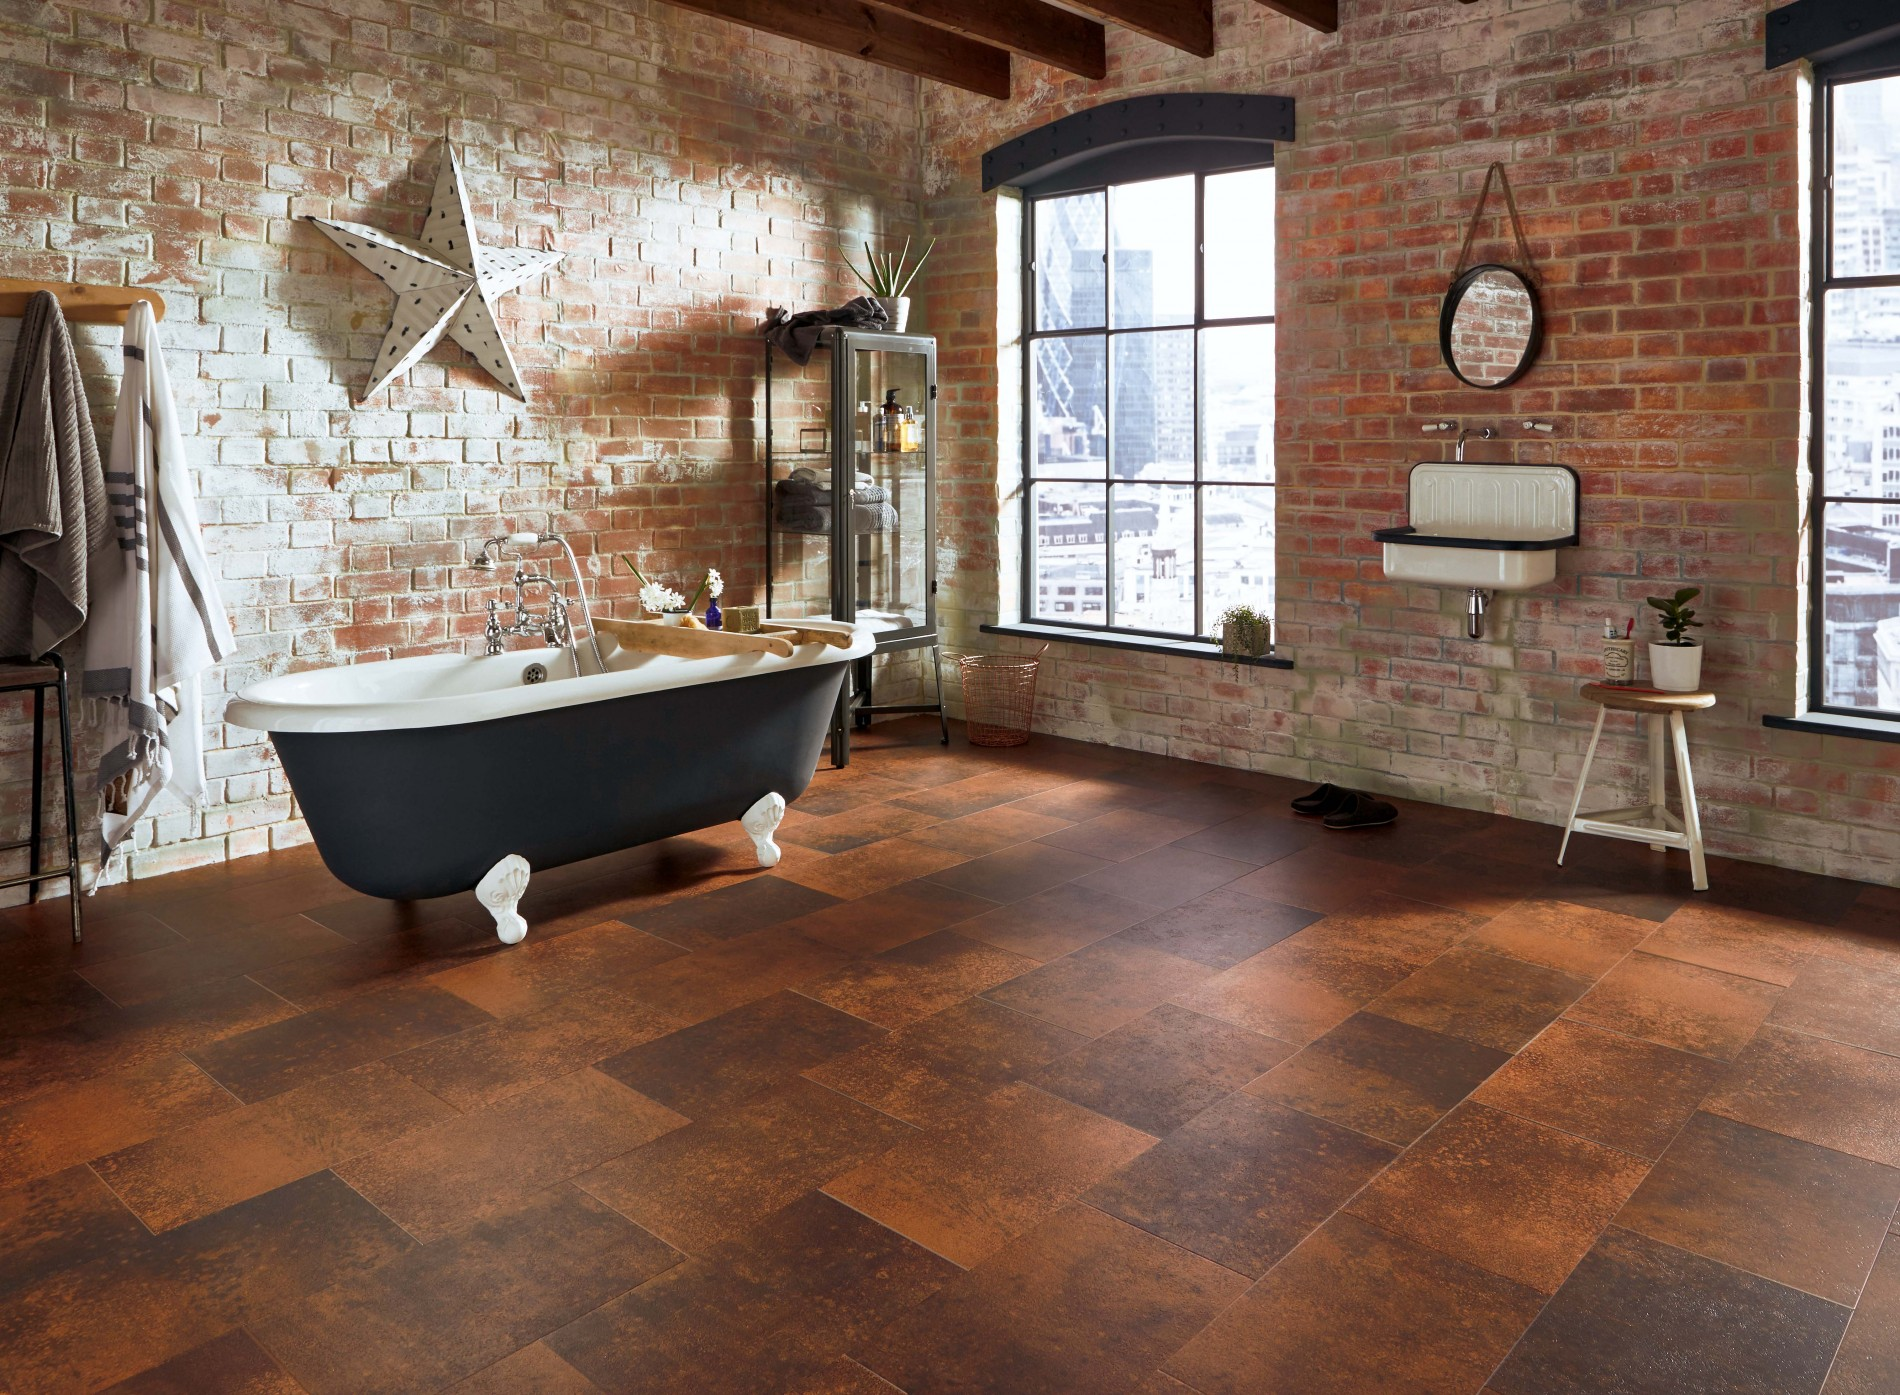 contemporary rustic Bathroom floor tiles